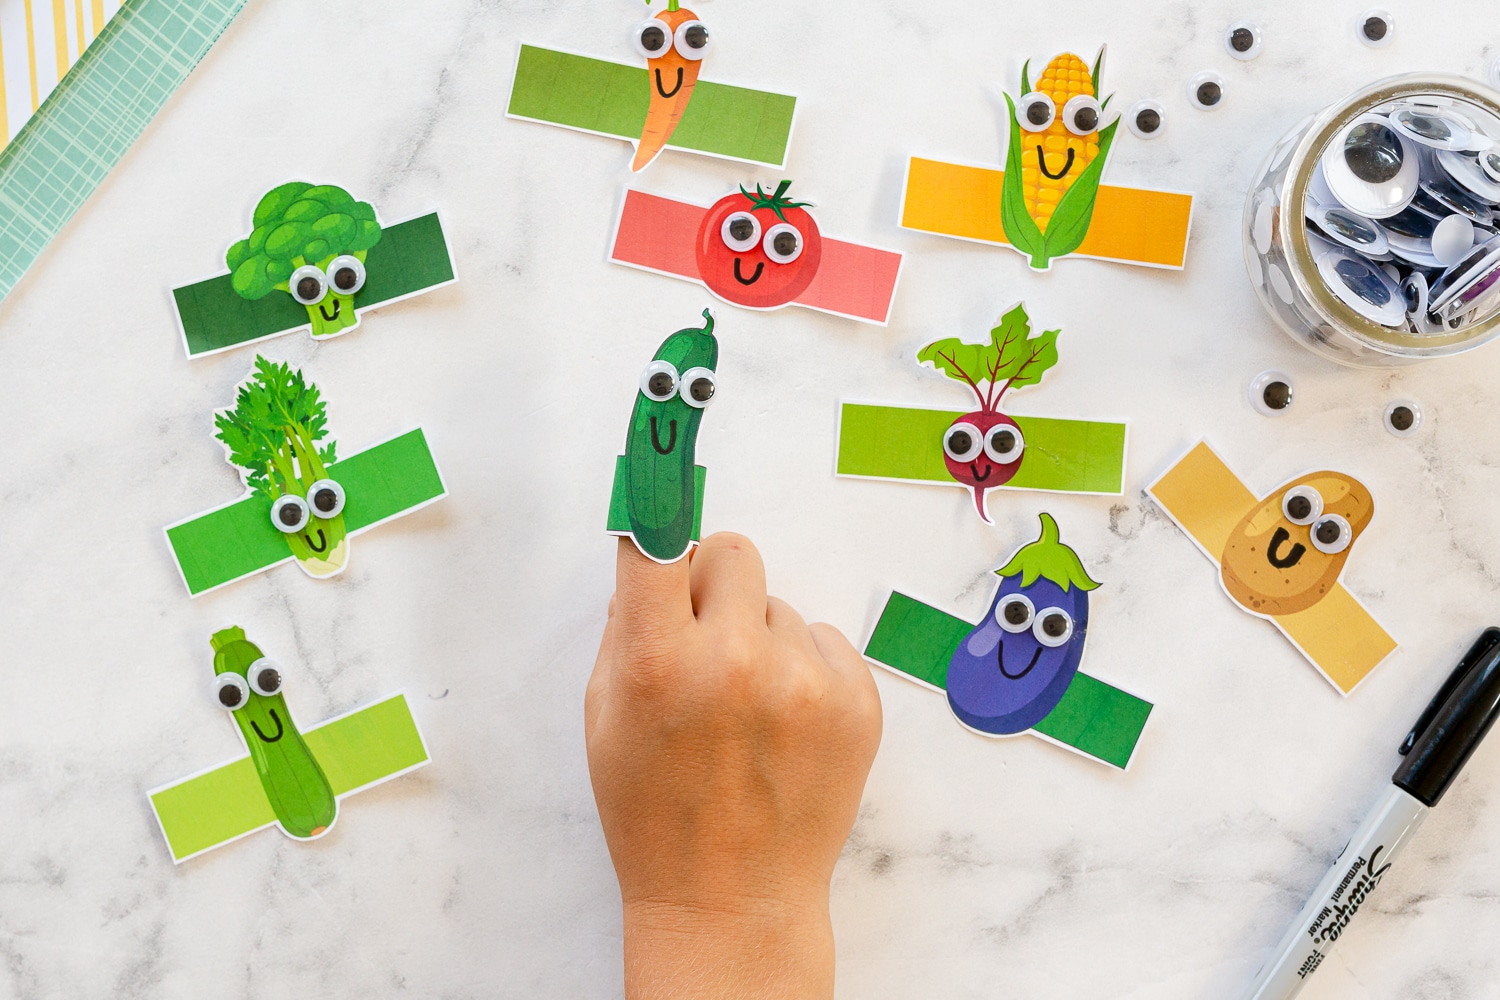 googly eyes added to veggie finger puppets